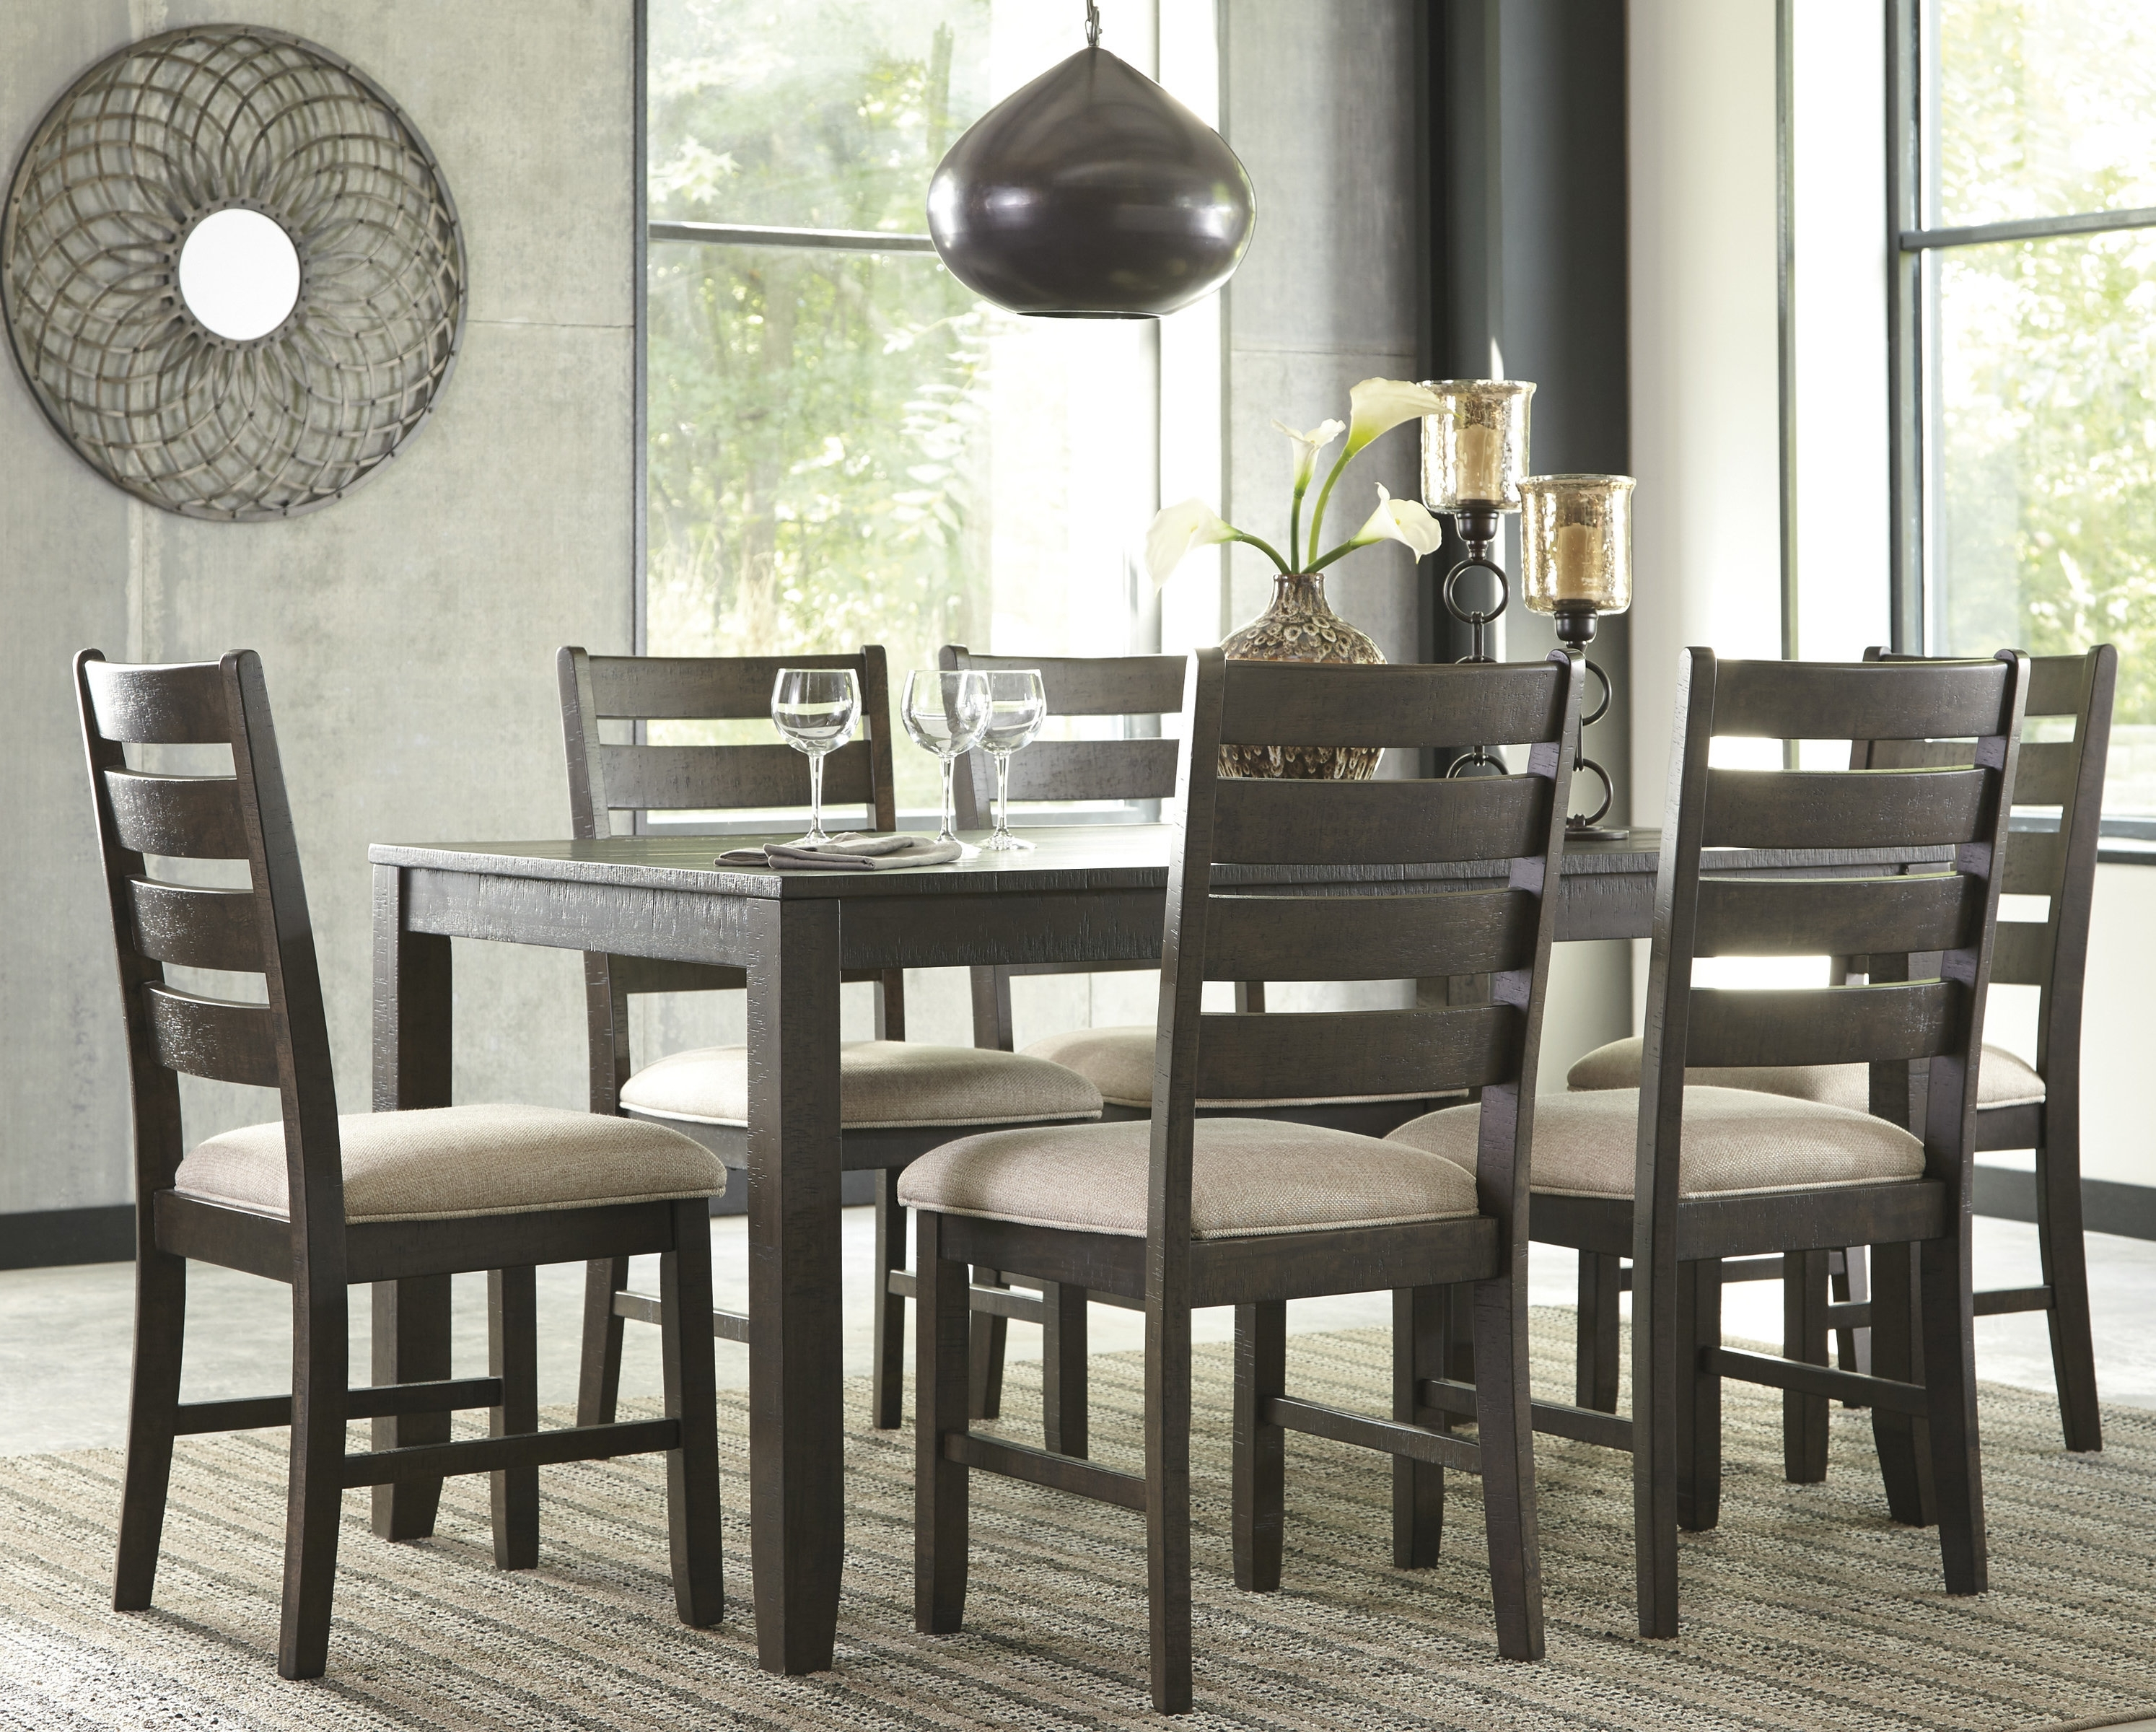 Choosing The Right 7 Piece Dining Set – Goodworksfurniture For Recent Partridge 7 Piece Dining Sets (View 5 of 20)